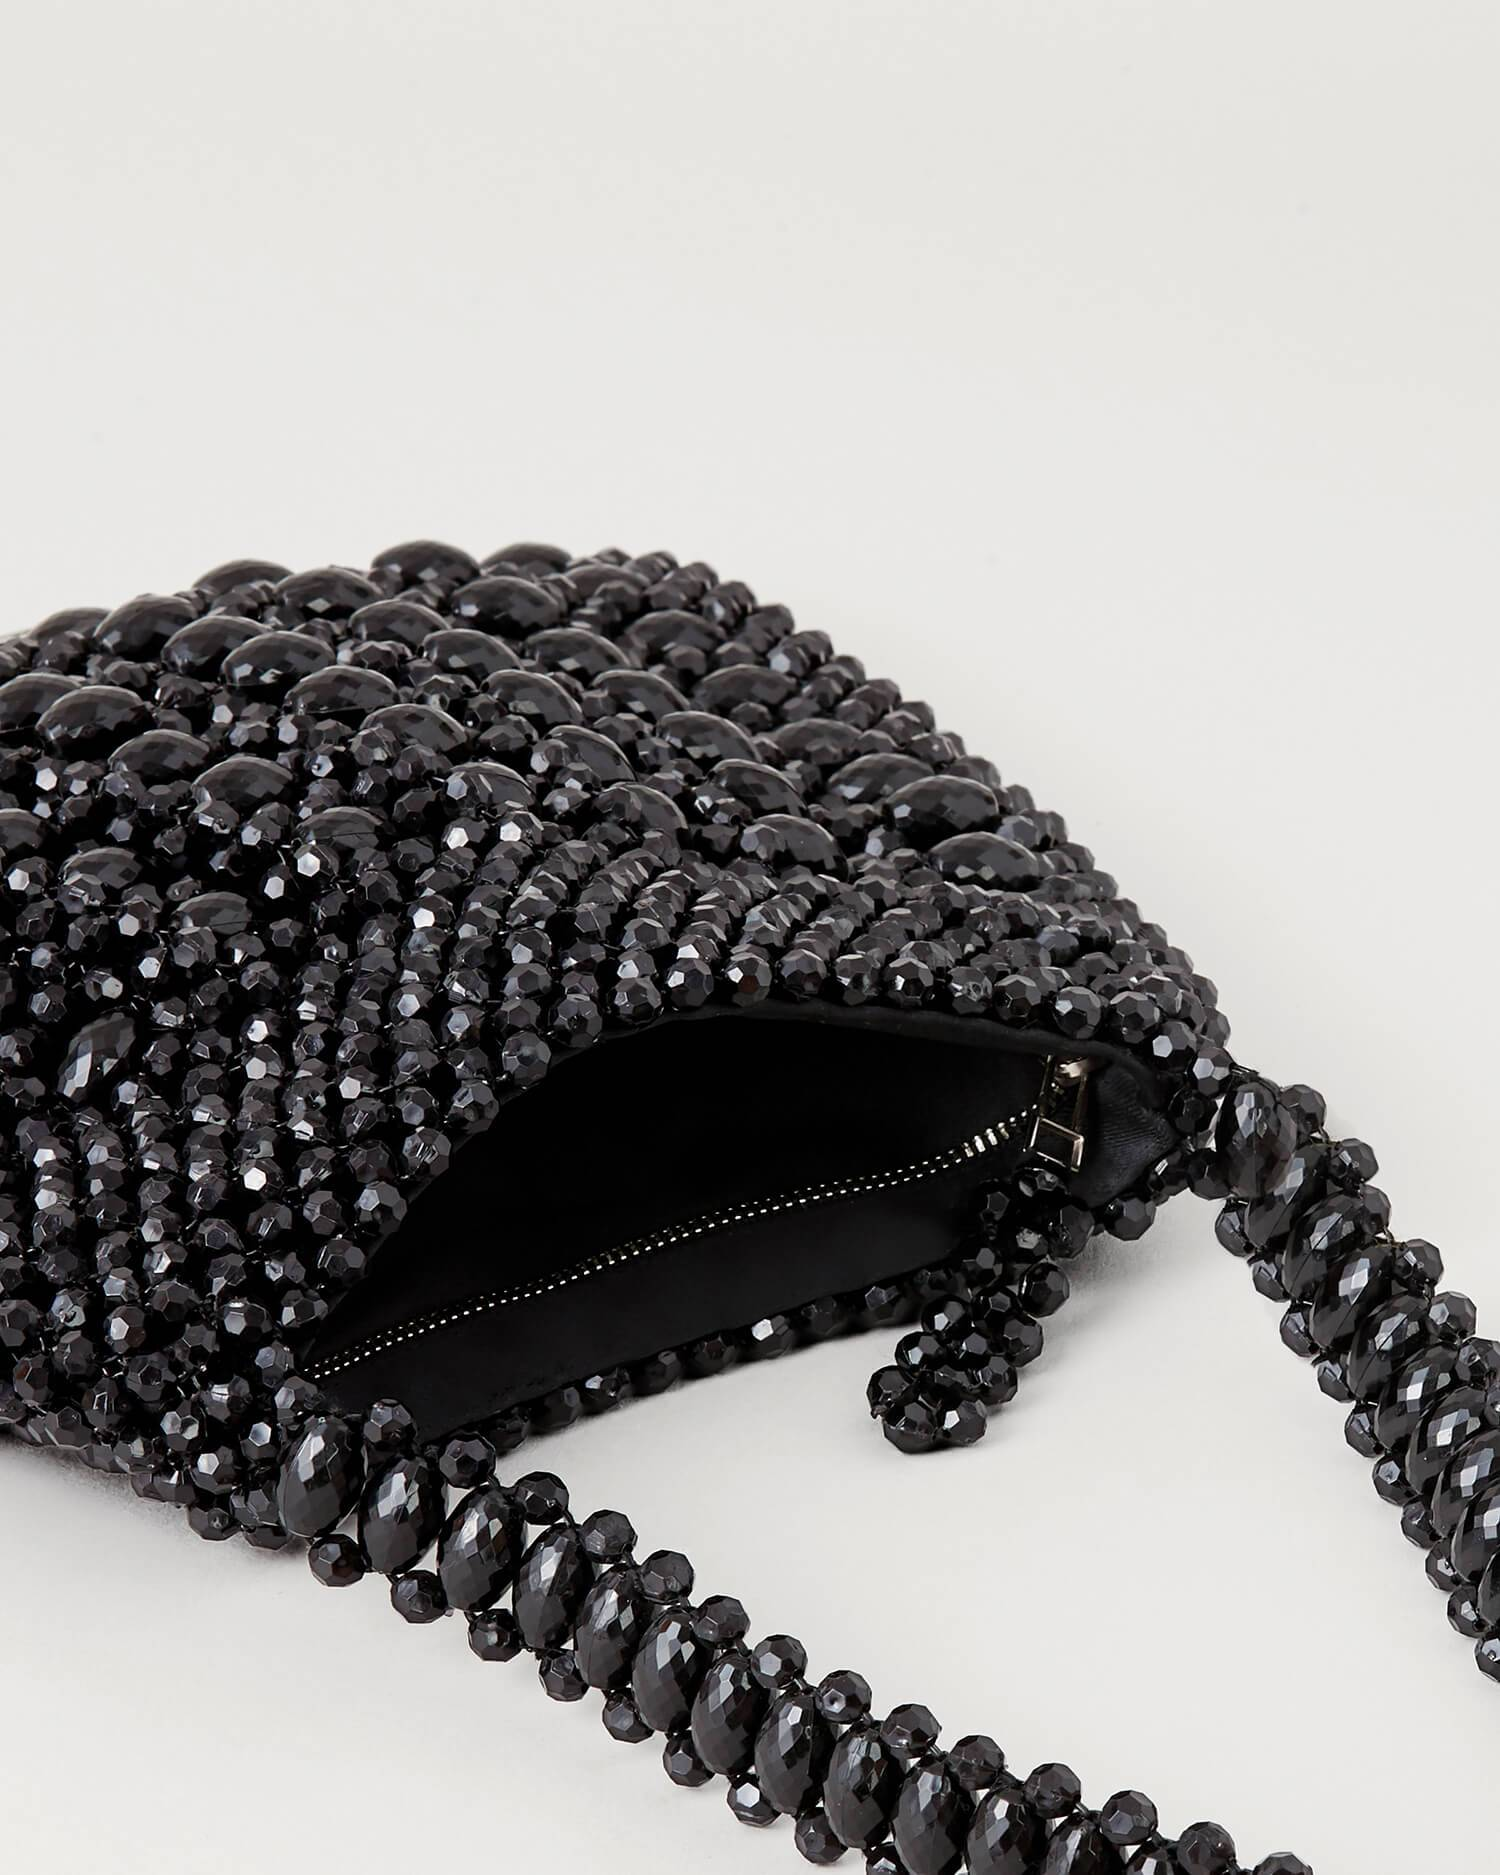 color:Black beads